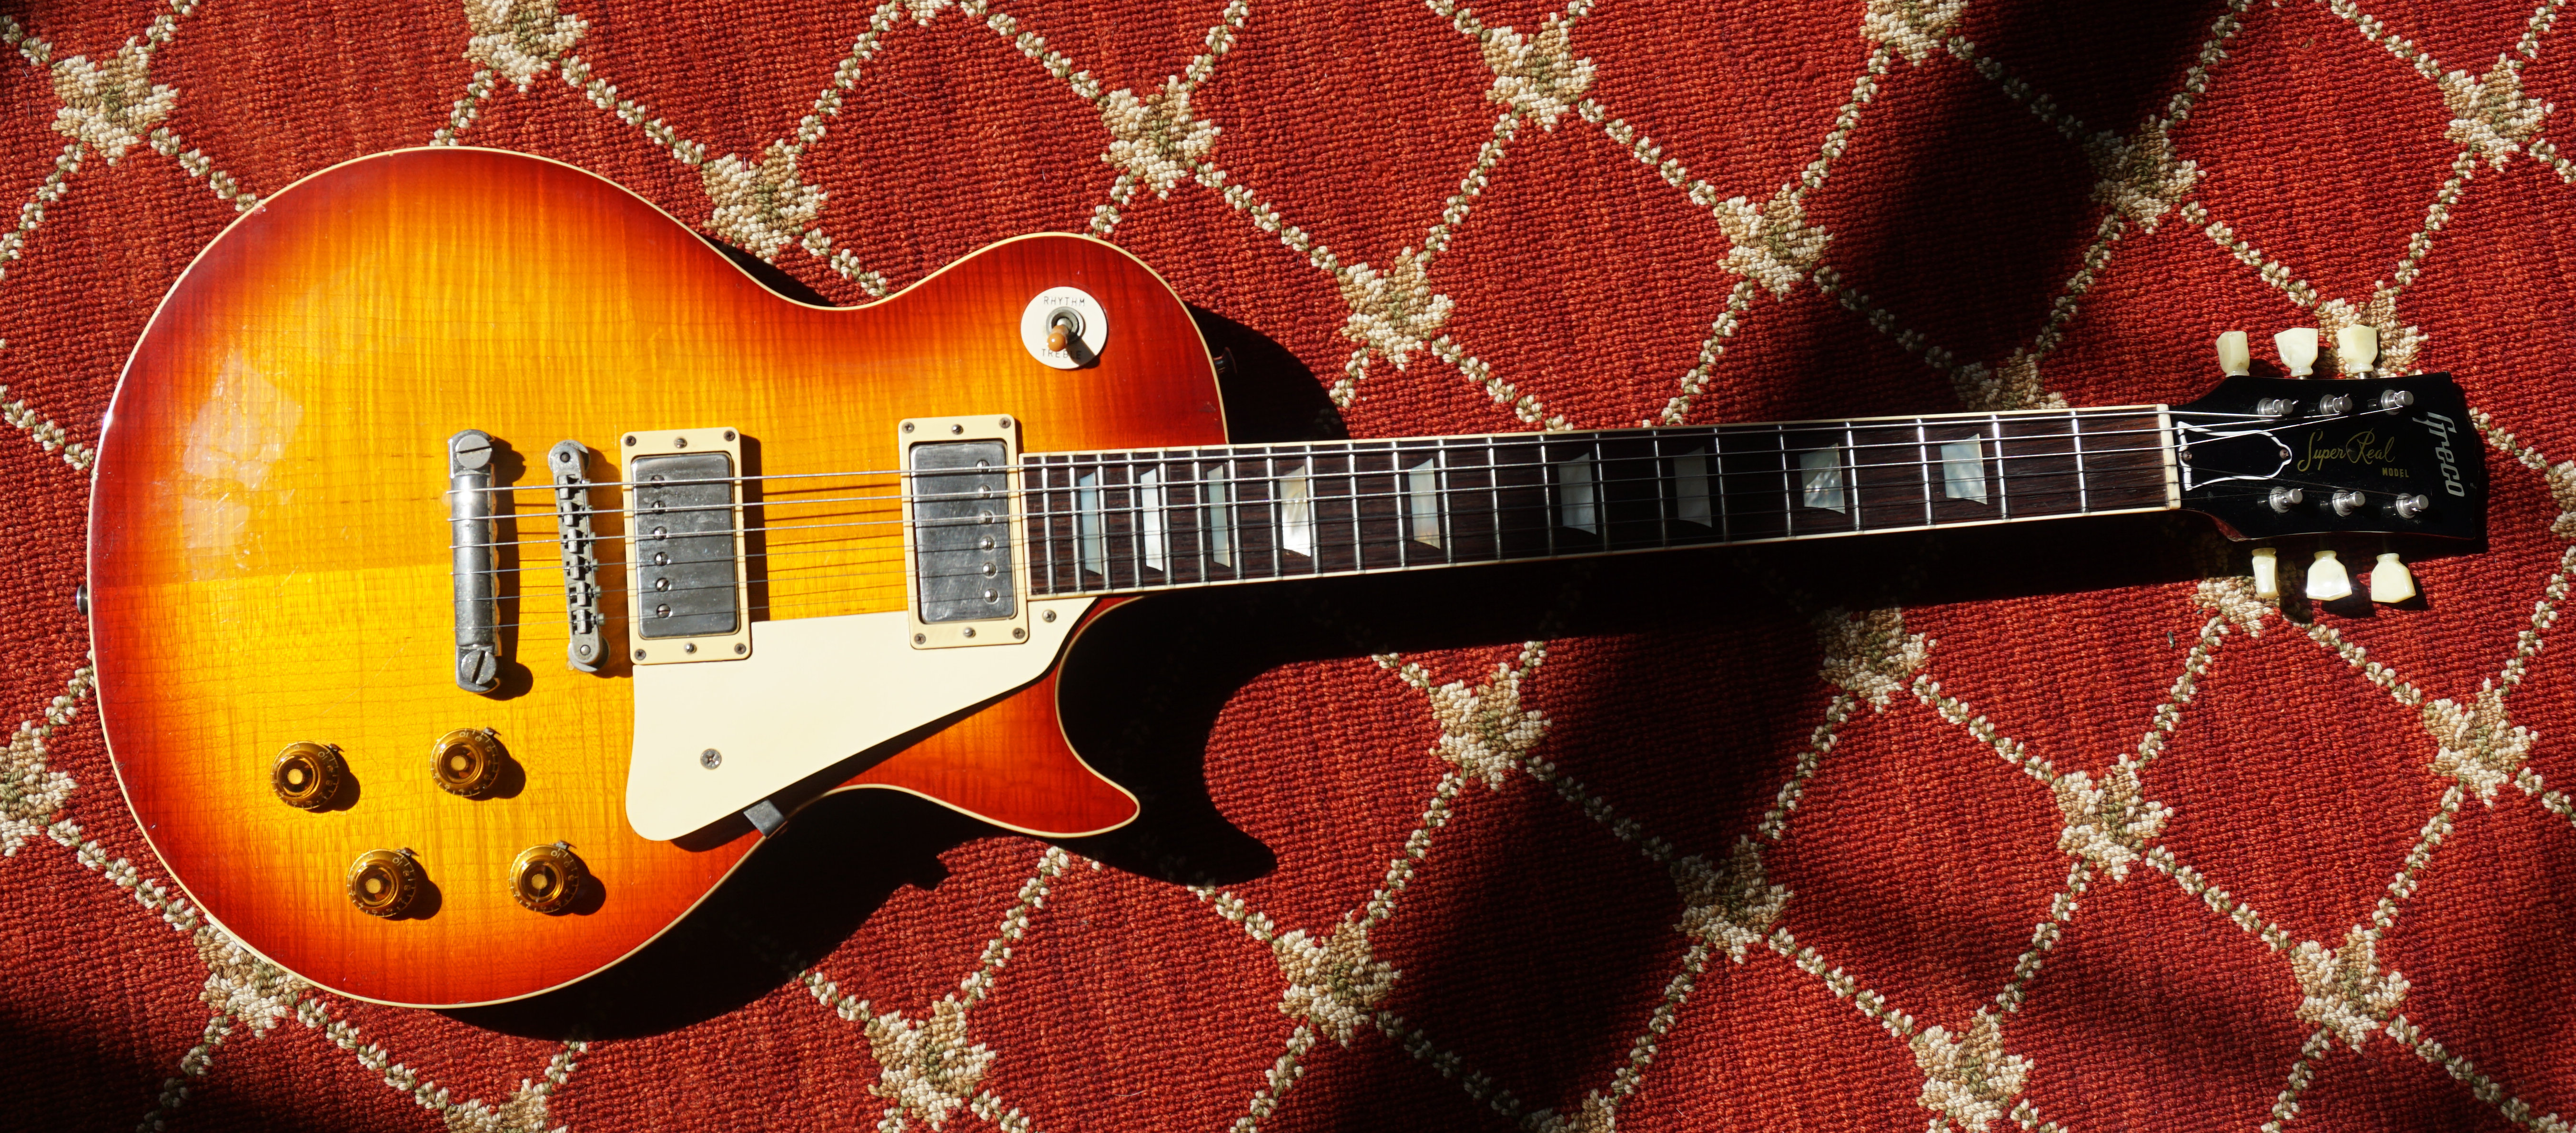 1981 Greco EGF 1800 DRY Z Solid Flame Top